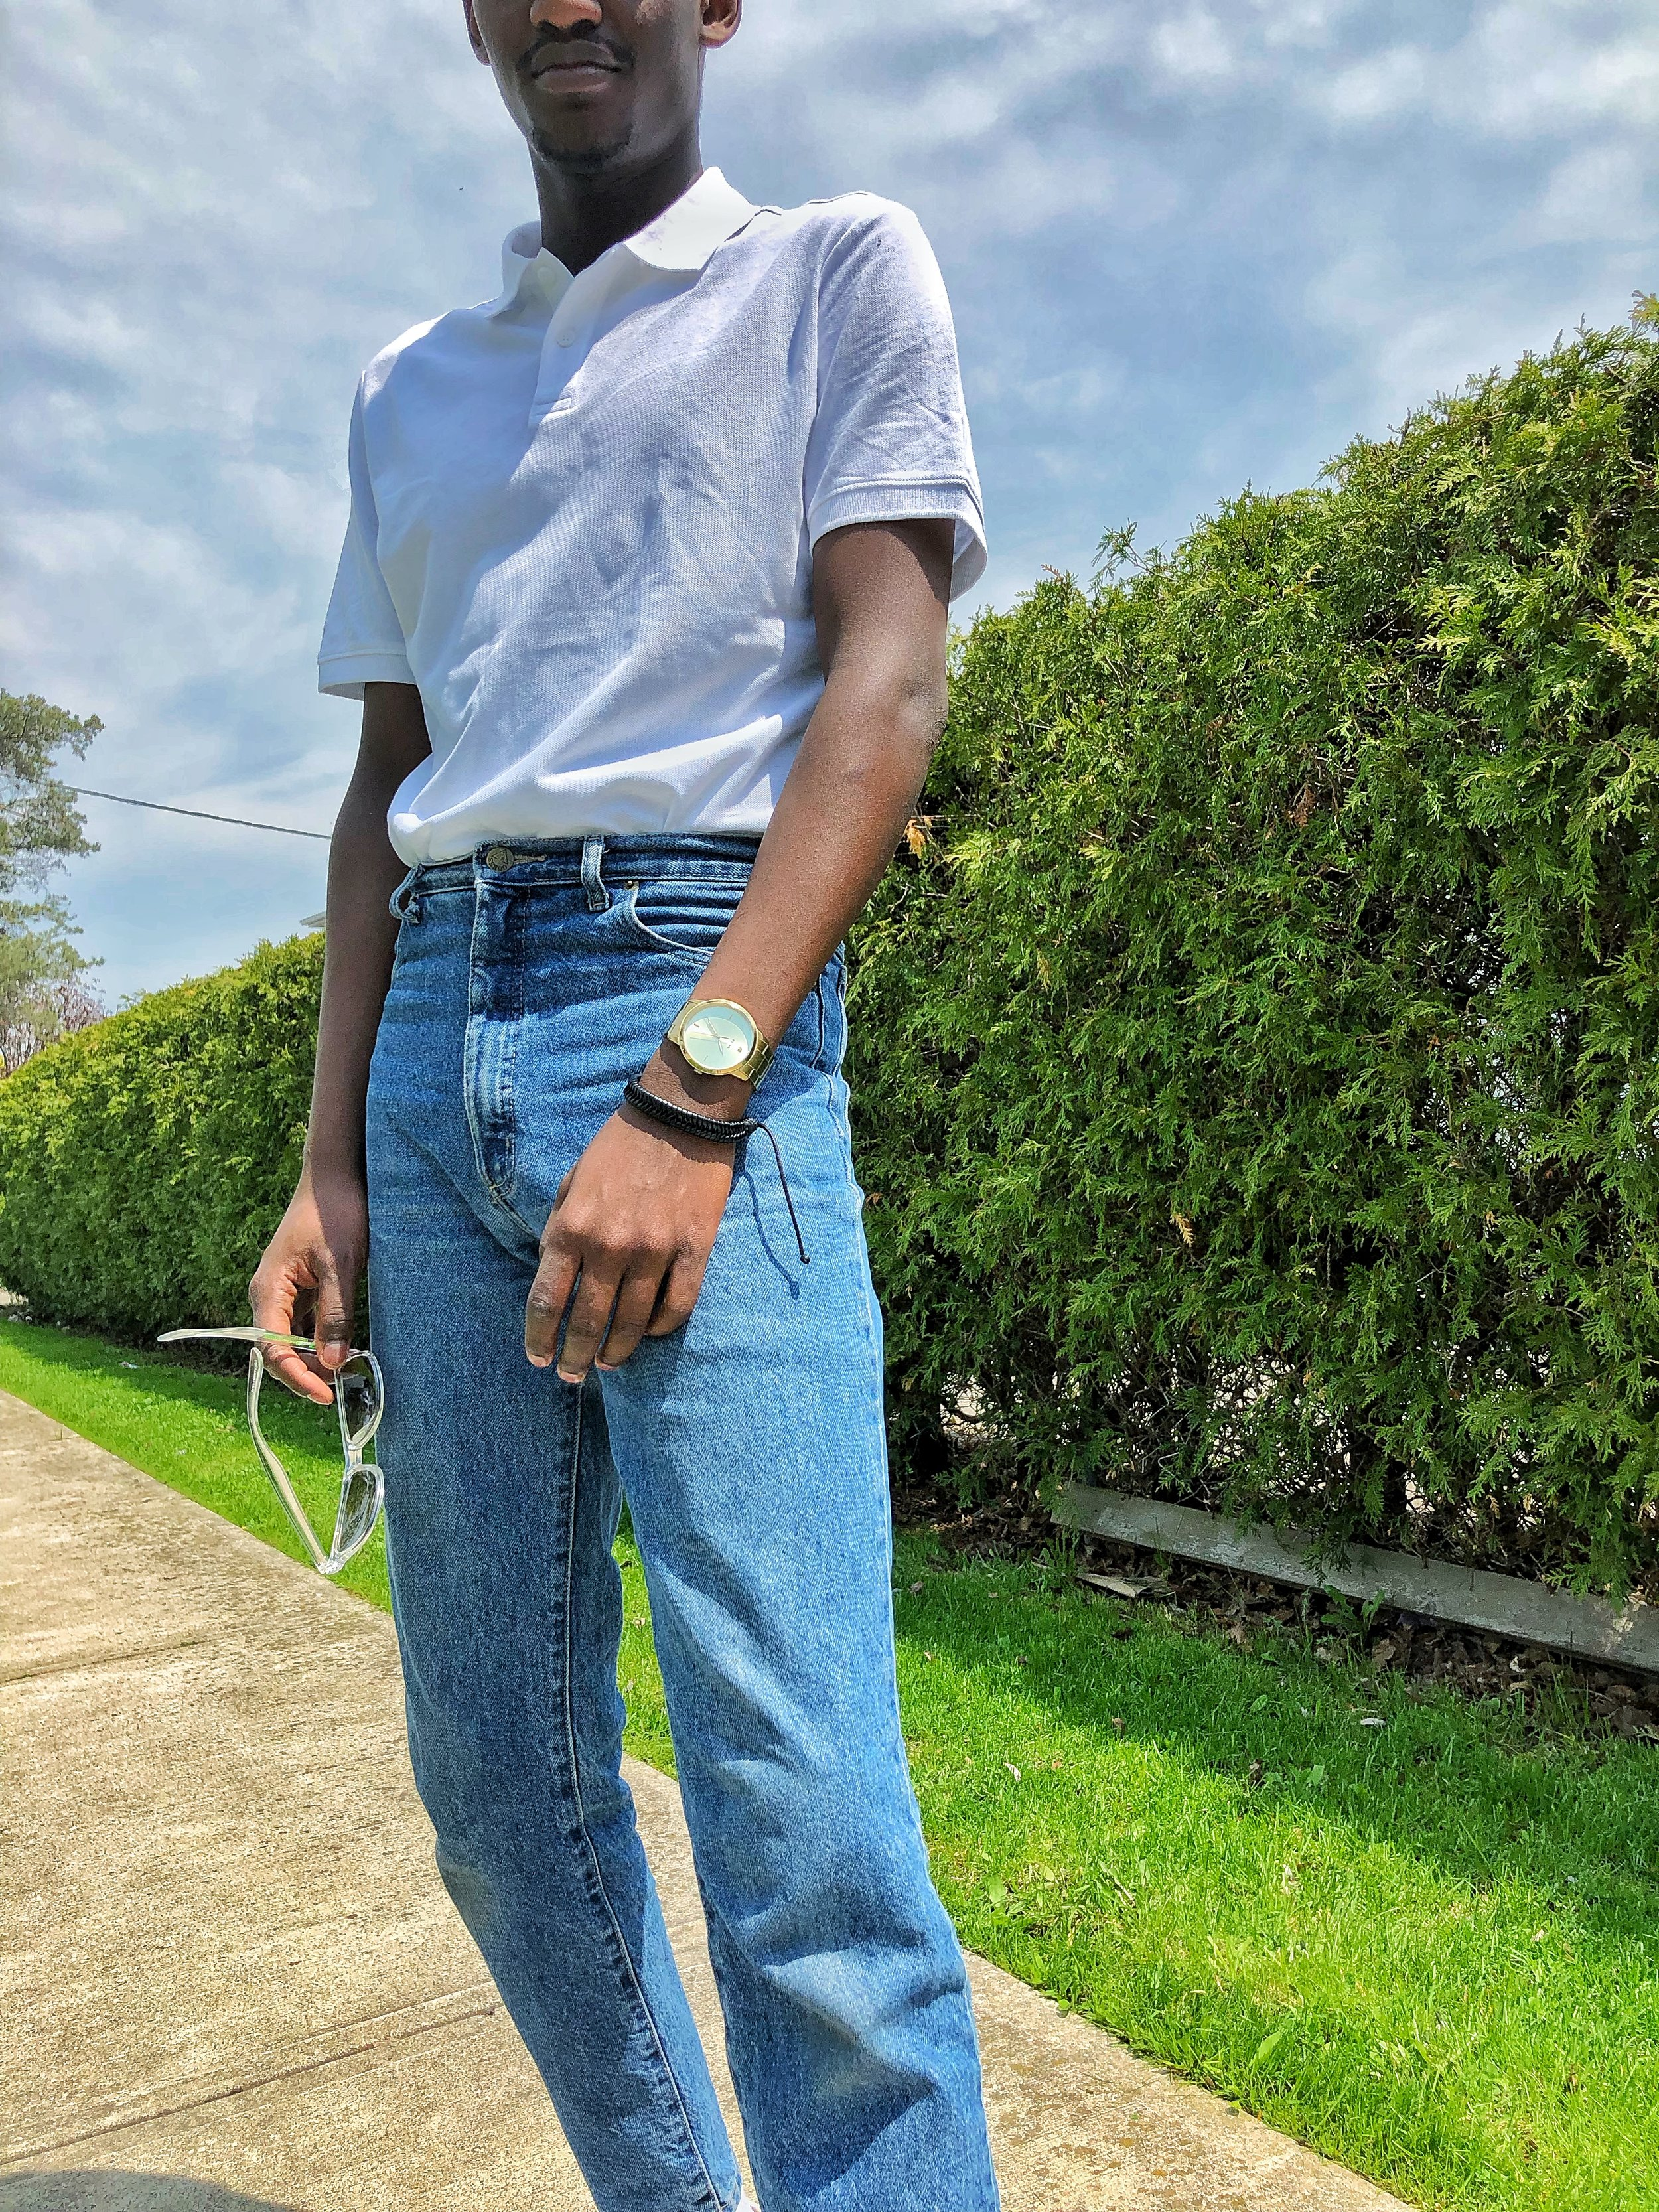 ARE DAD JEANS THE MOM JEANS FOR GUYS